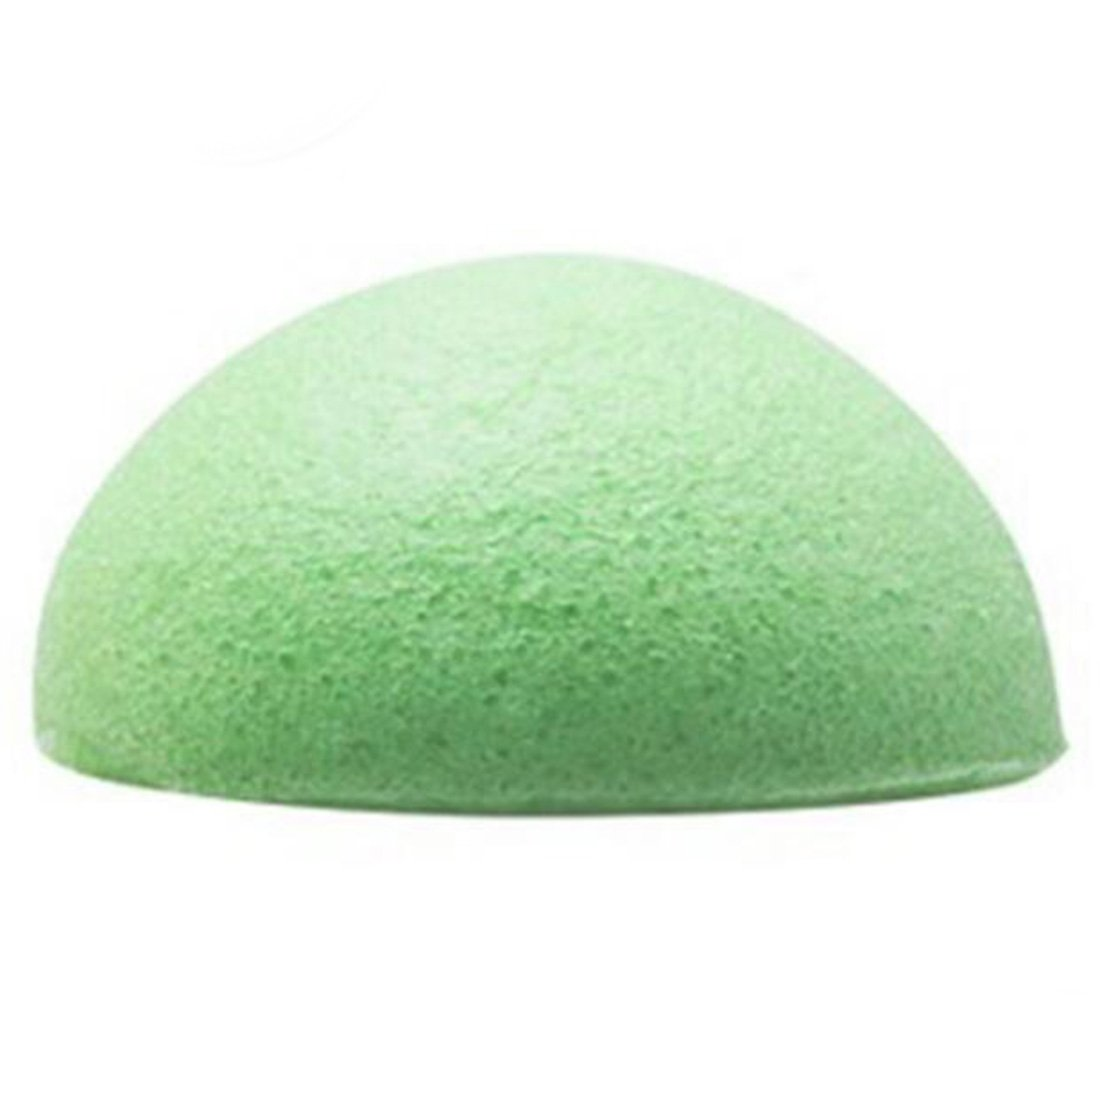 Green Comfortable Cleanser Puff Natural Konjac Konnyaku Facial Puff Face Wash Cleansing Sponge